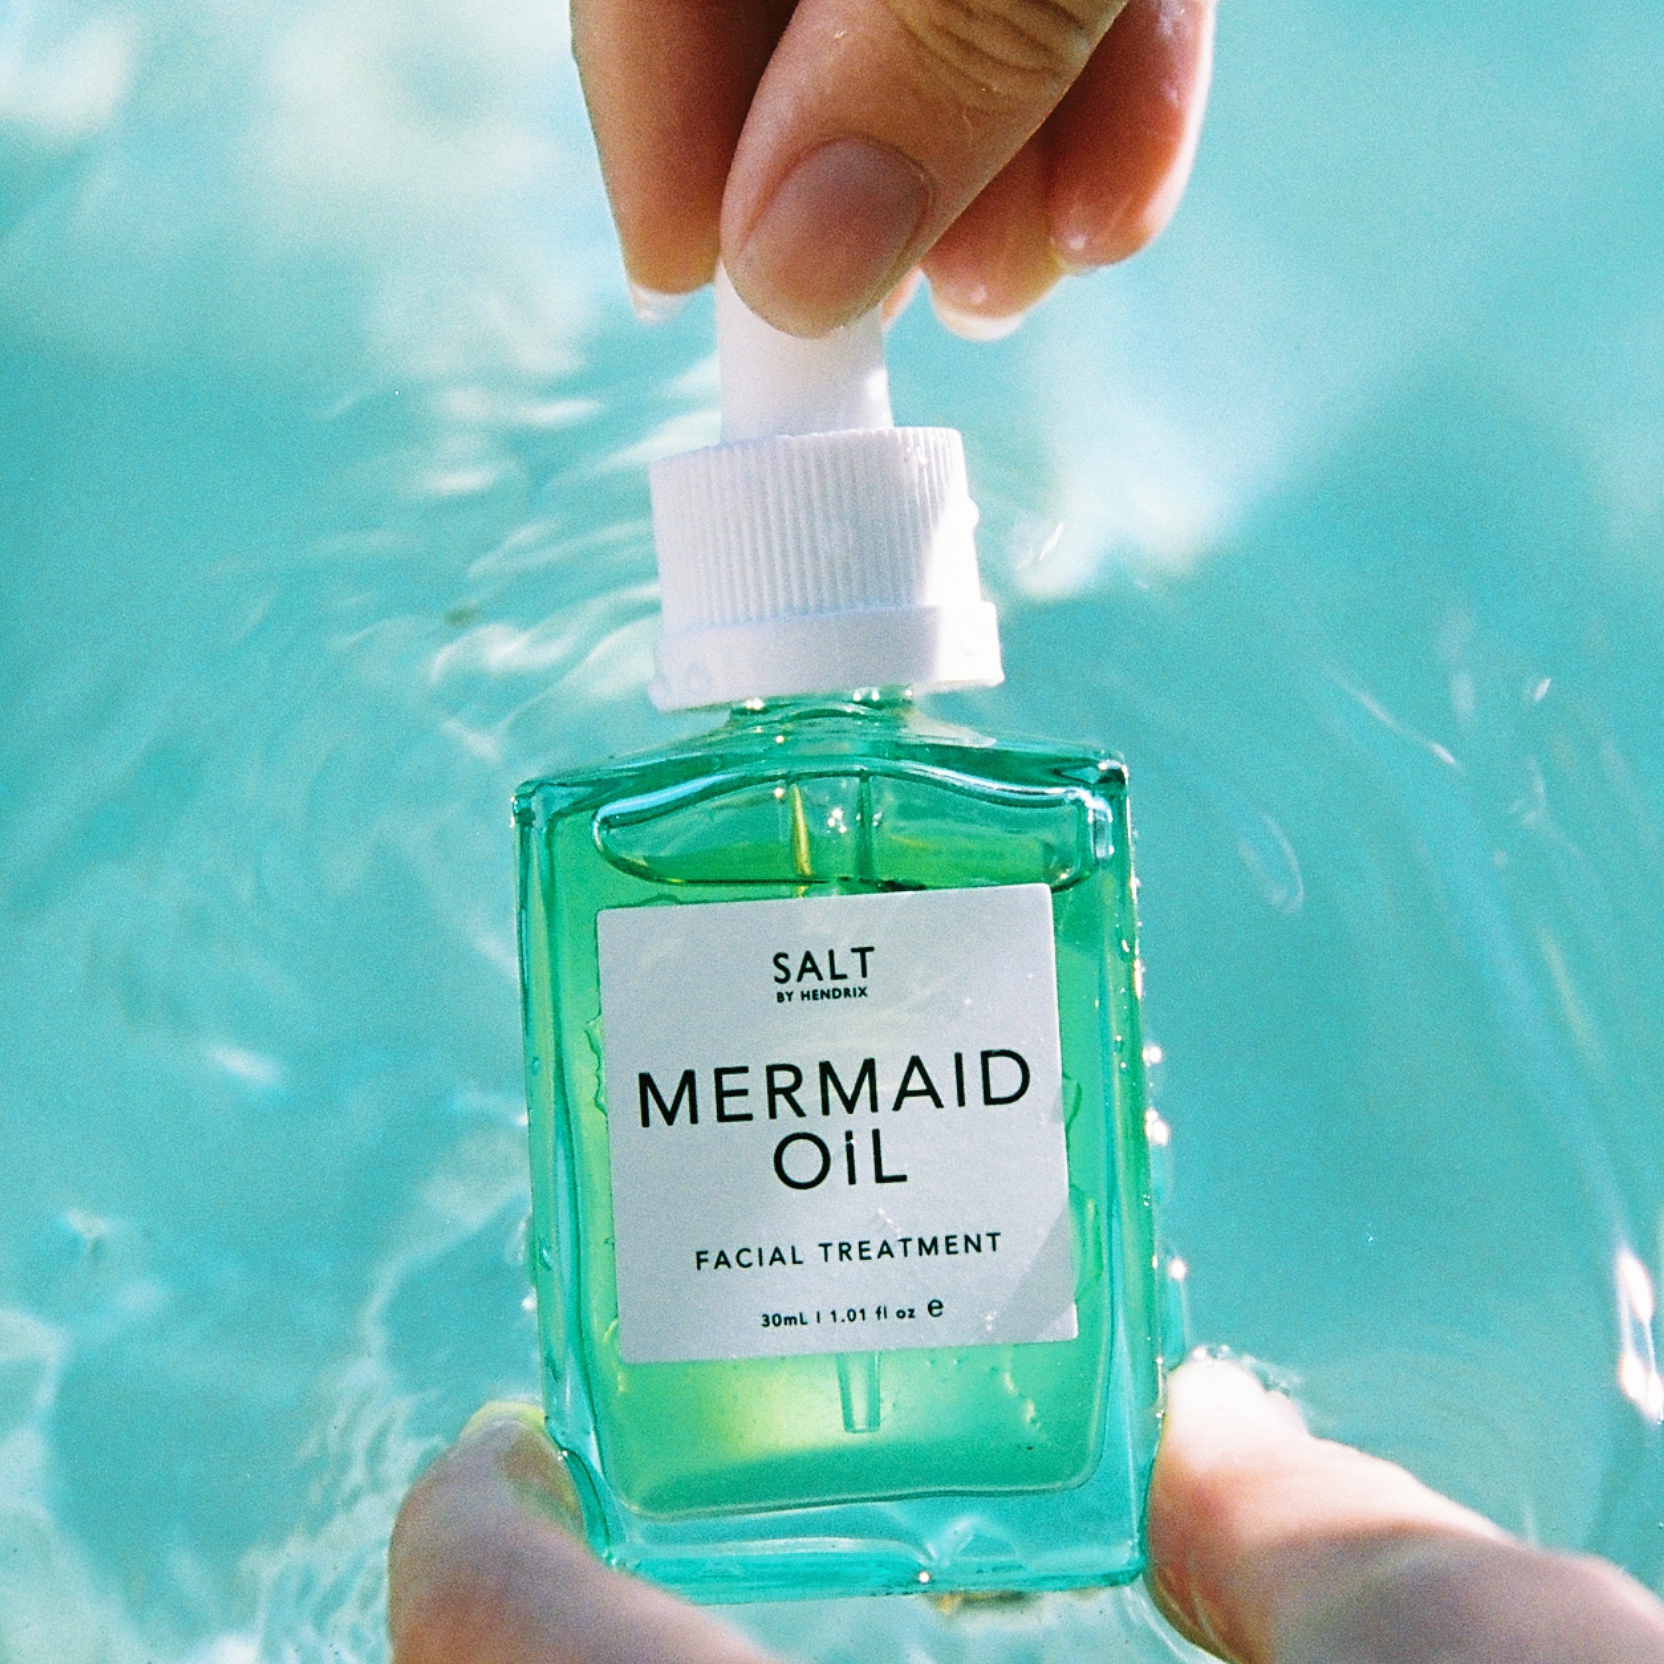 Mermaid Facial Treatment Oil